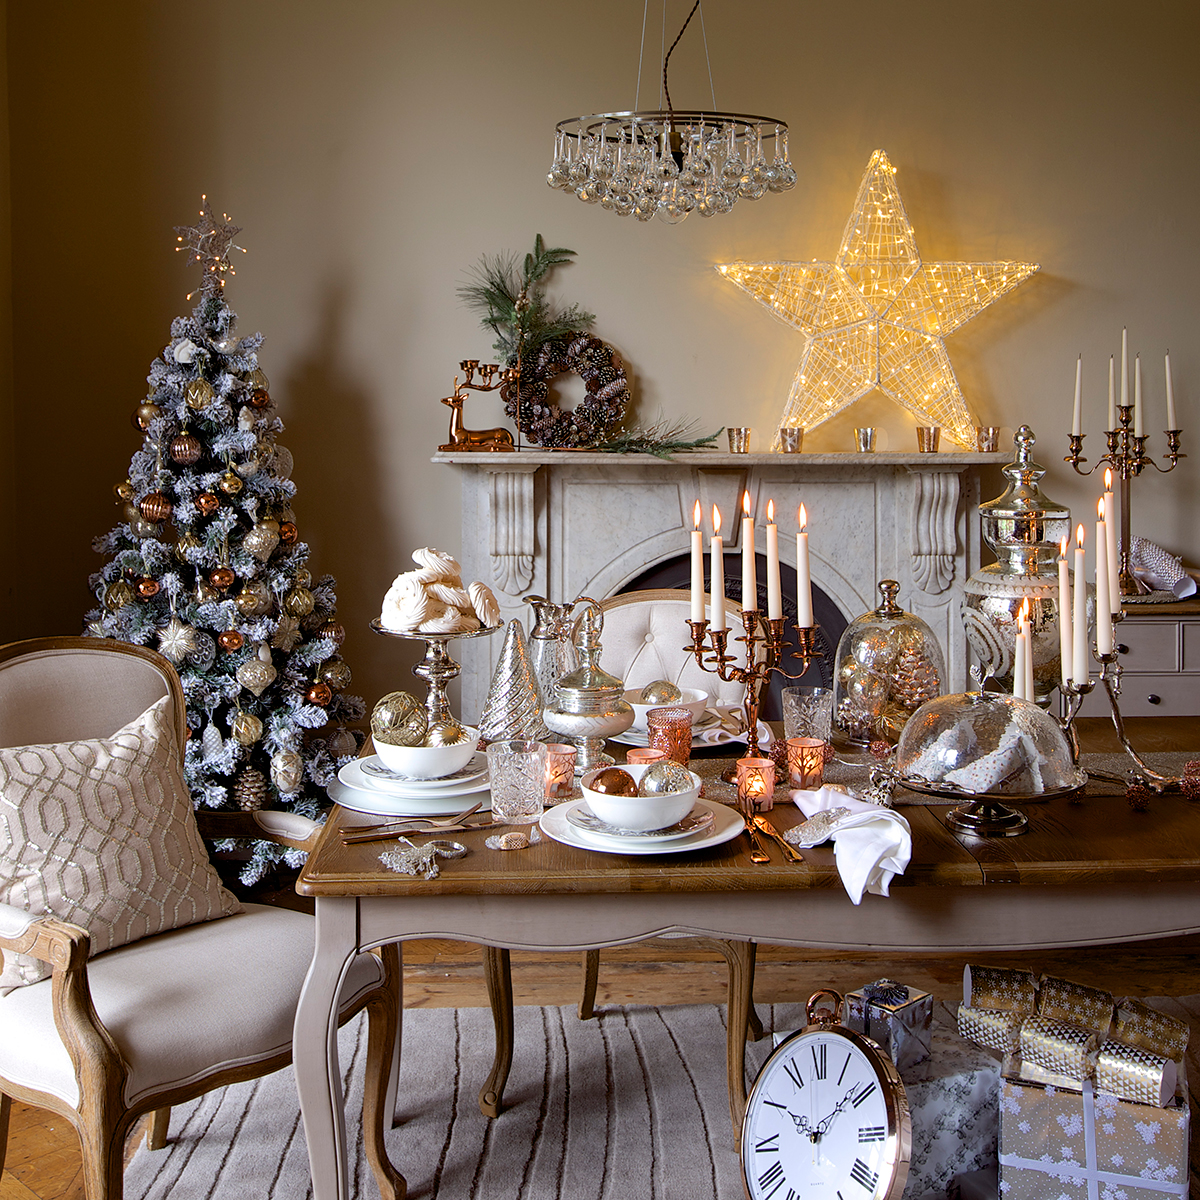 christmas table decoration ideas for festive dining christmas decorations good housekeeping. Black Bedroom Furniture Sets. Home Design Ideas